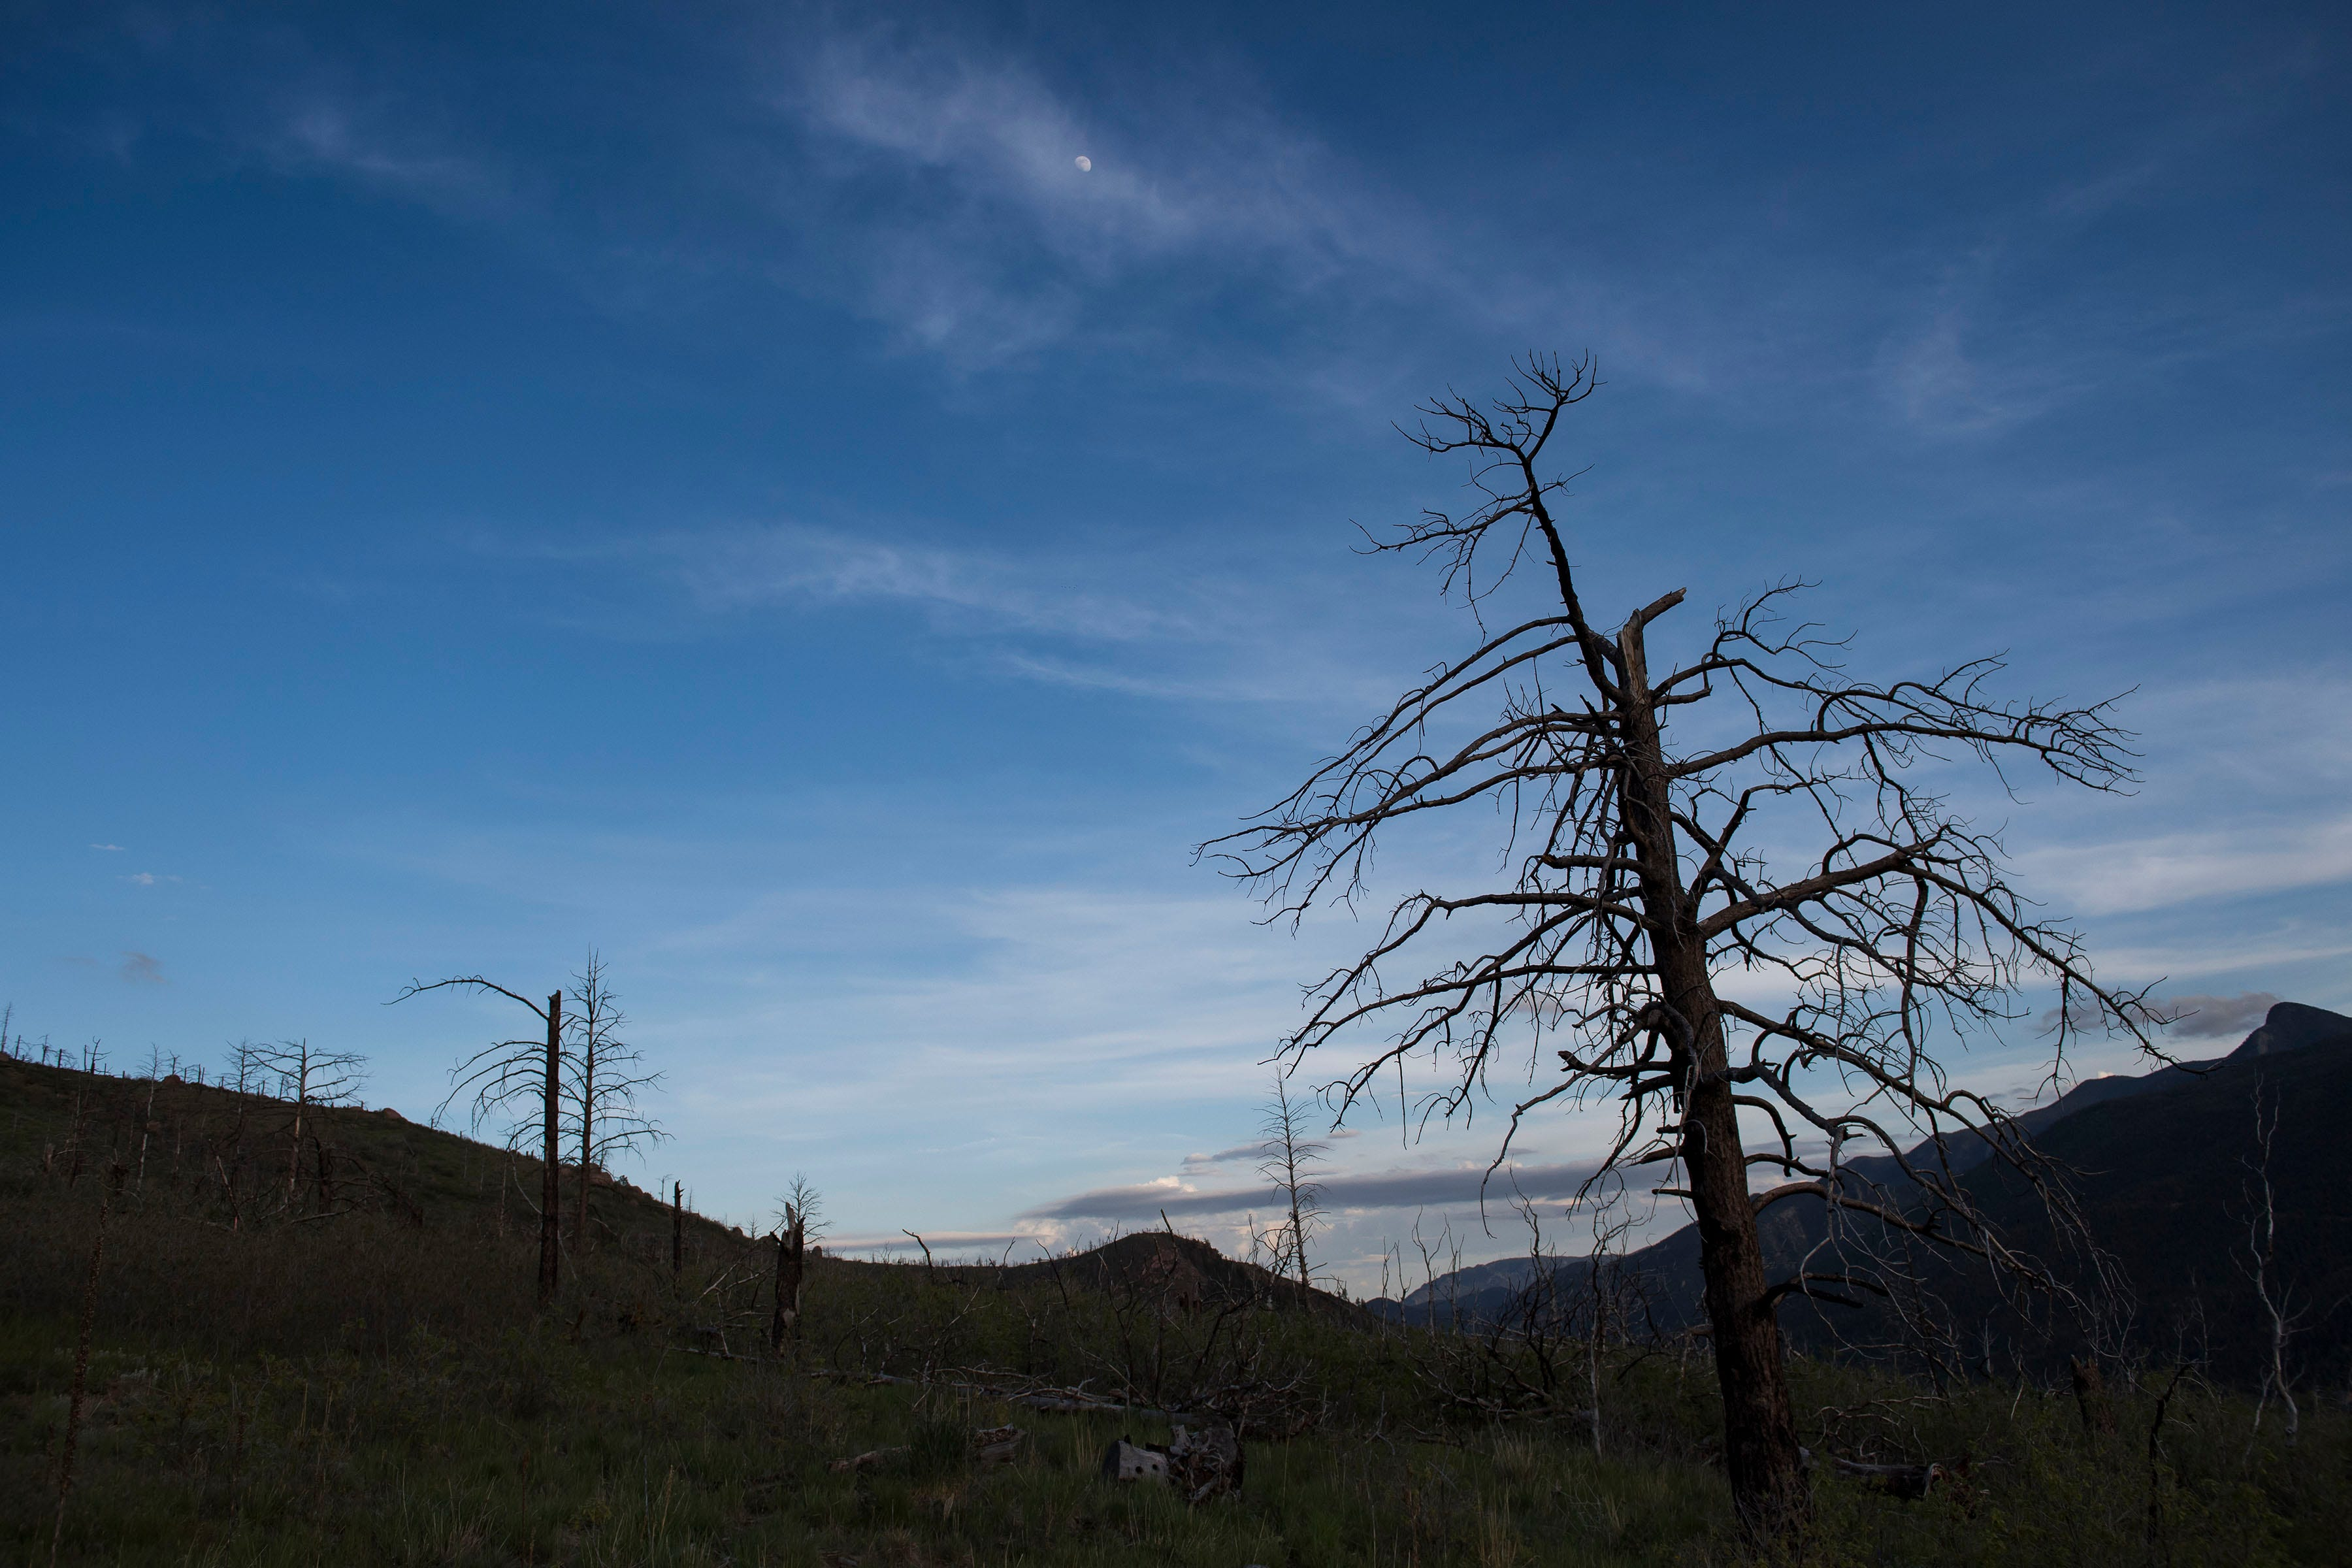 The burn-scarred hillside from the 2012 Waldo Canyon Fire. Had the fire turned a different way, Cascade-Chipita Park might not have survived.